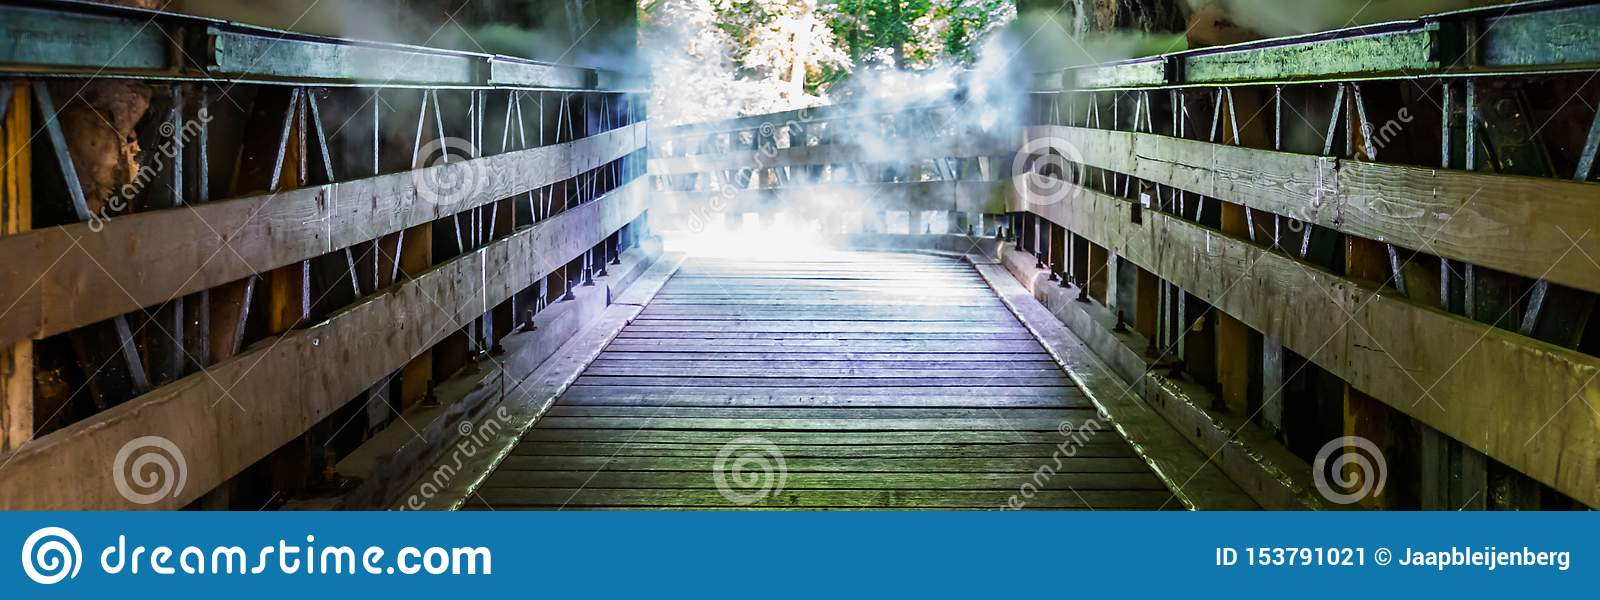 Wooden walking path through a misty cave, scary horror scenery, halloween background